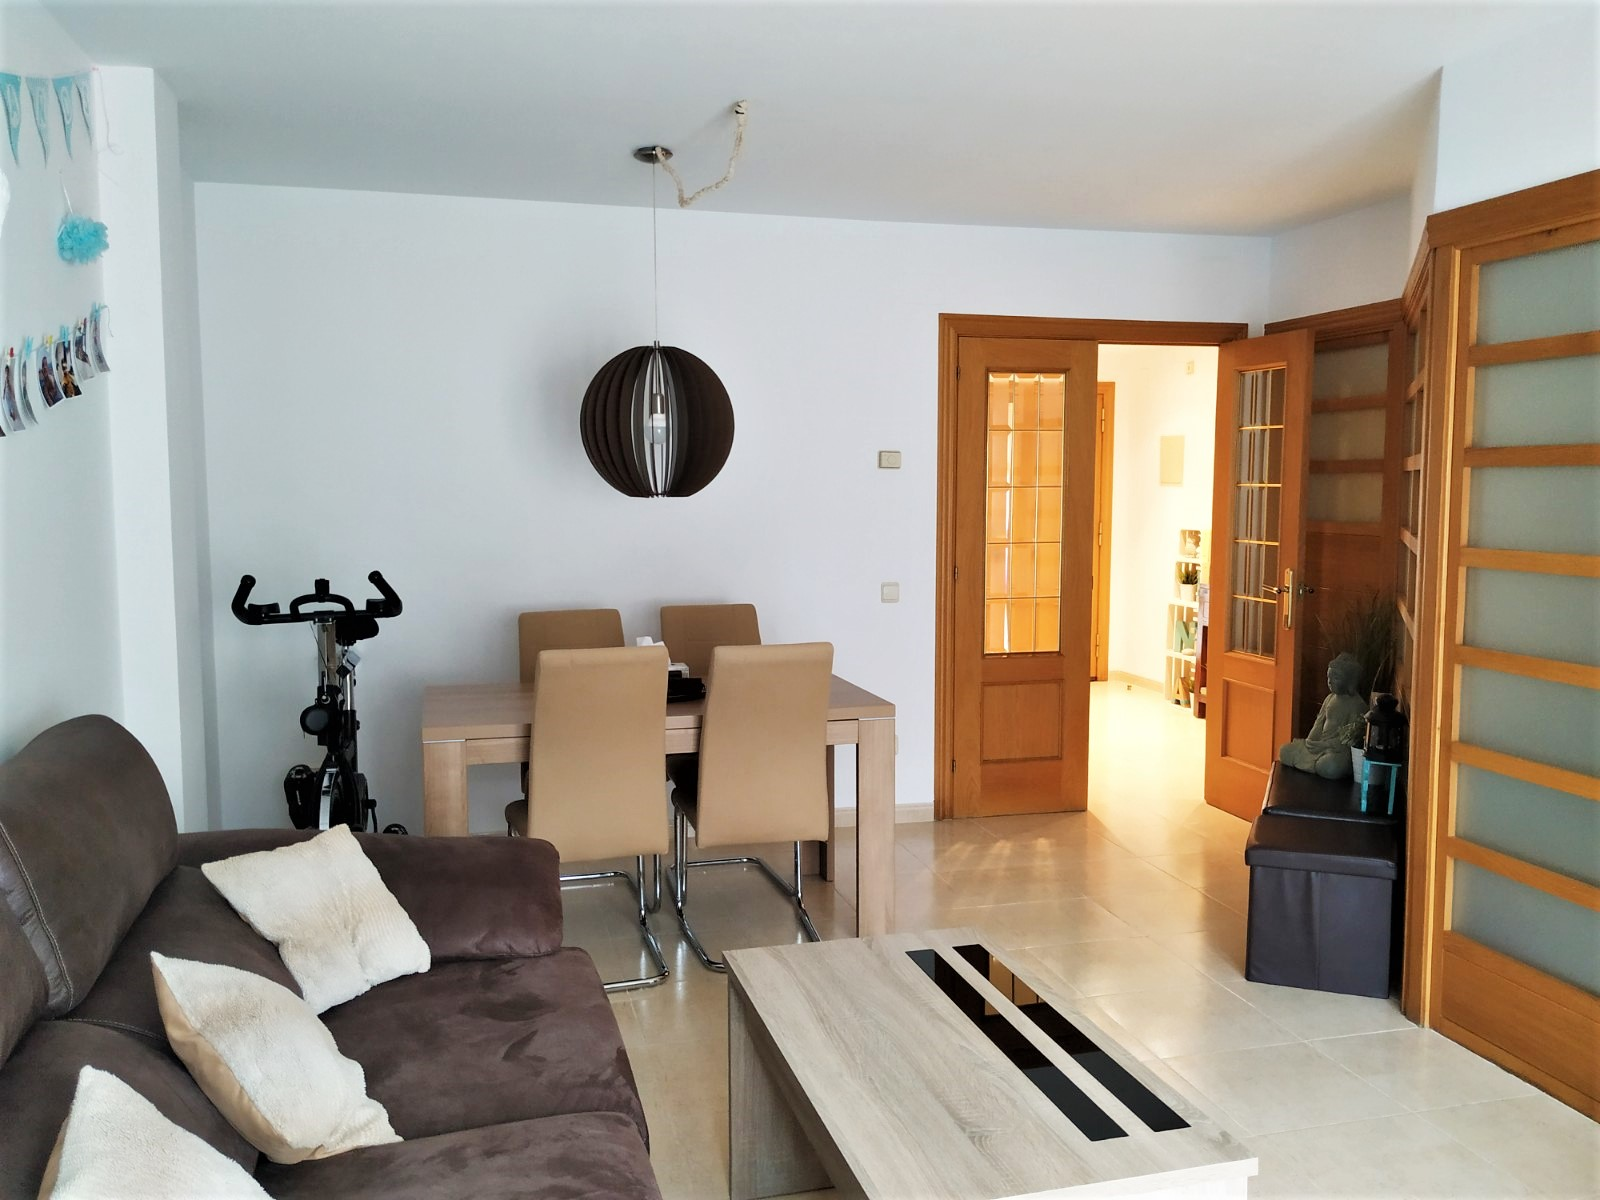 Modern apartment for sale in the center of Santa Coloma de Farners